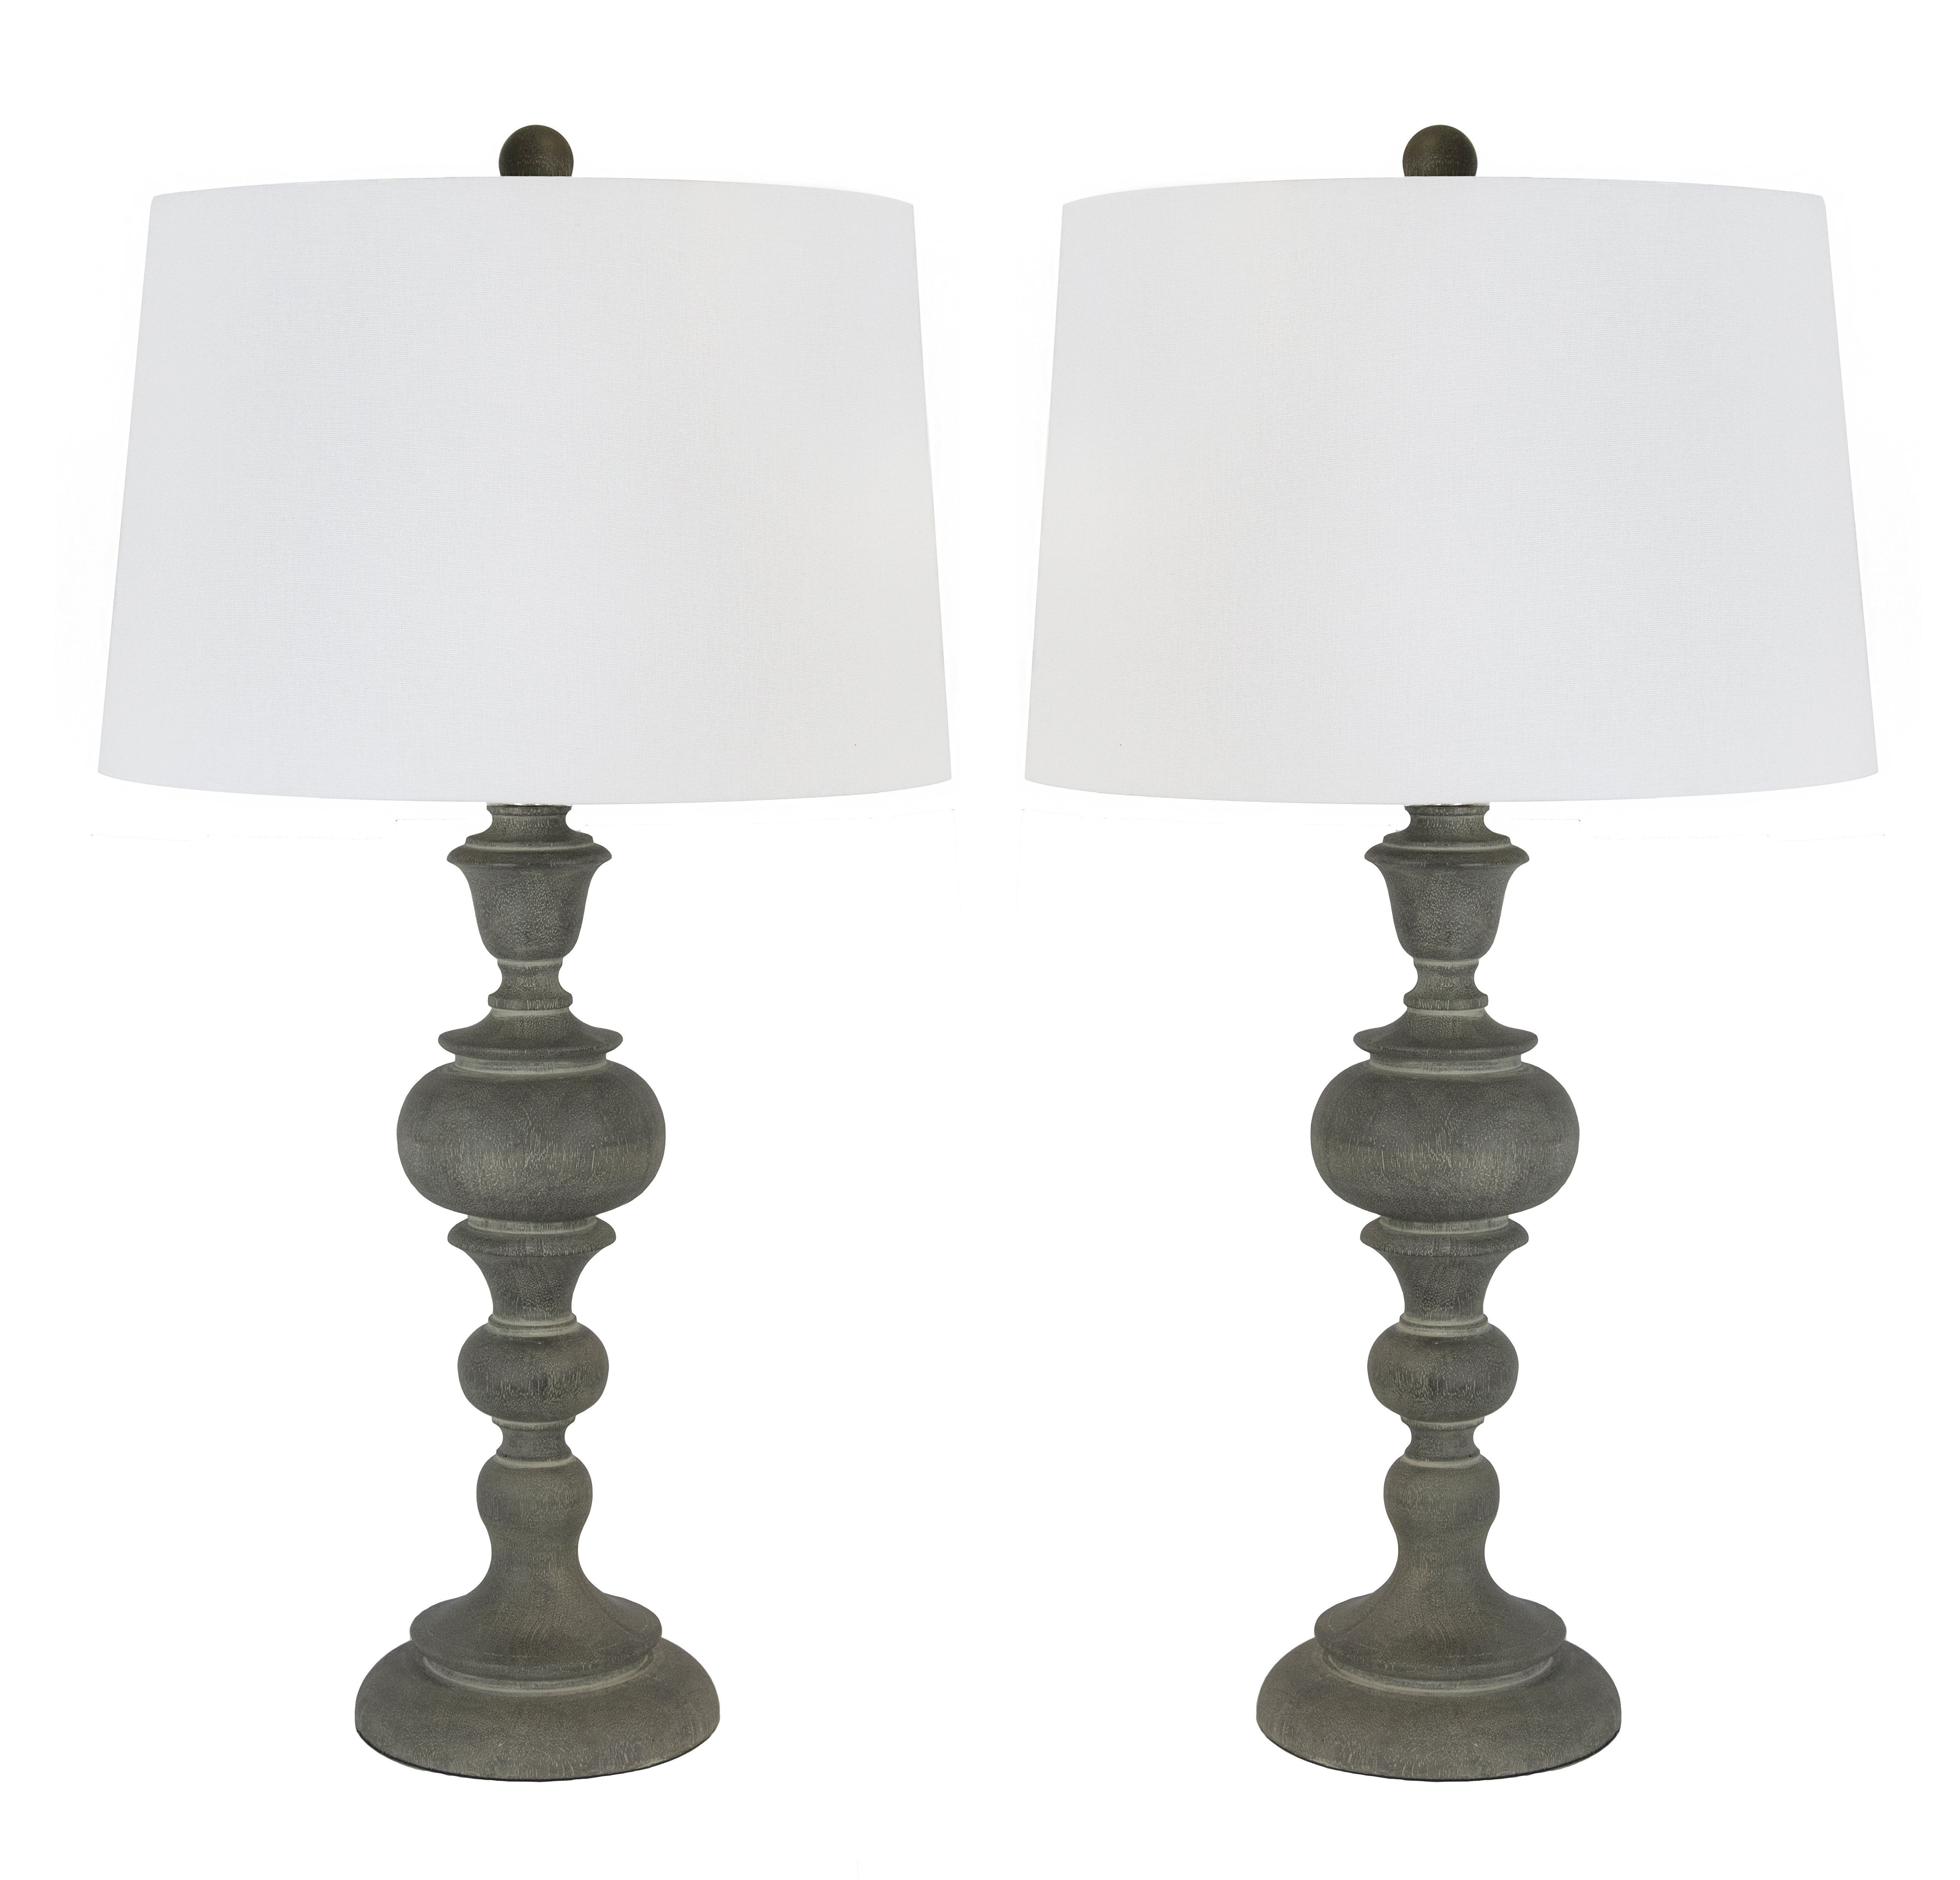 "Gracie Oaks Mathena Washed 30"" Table Lamp & Reviews"